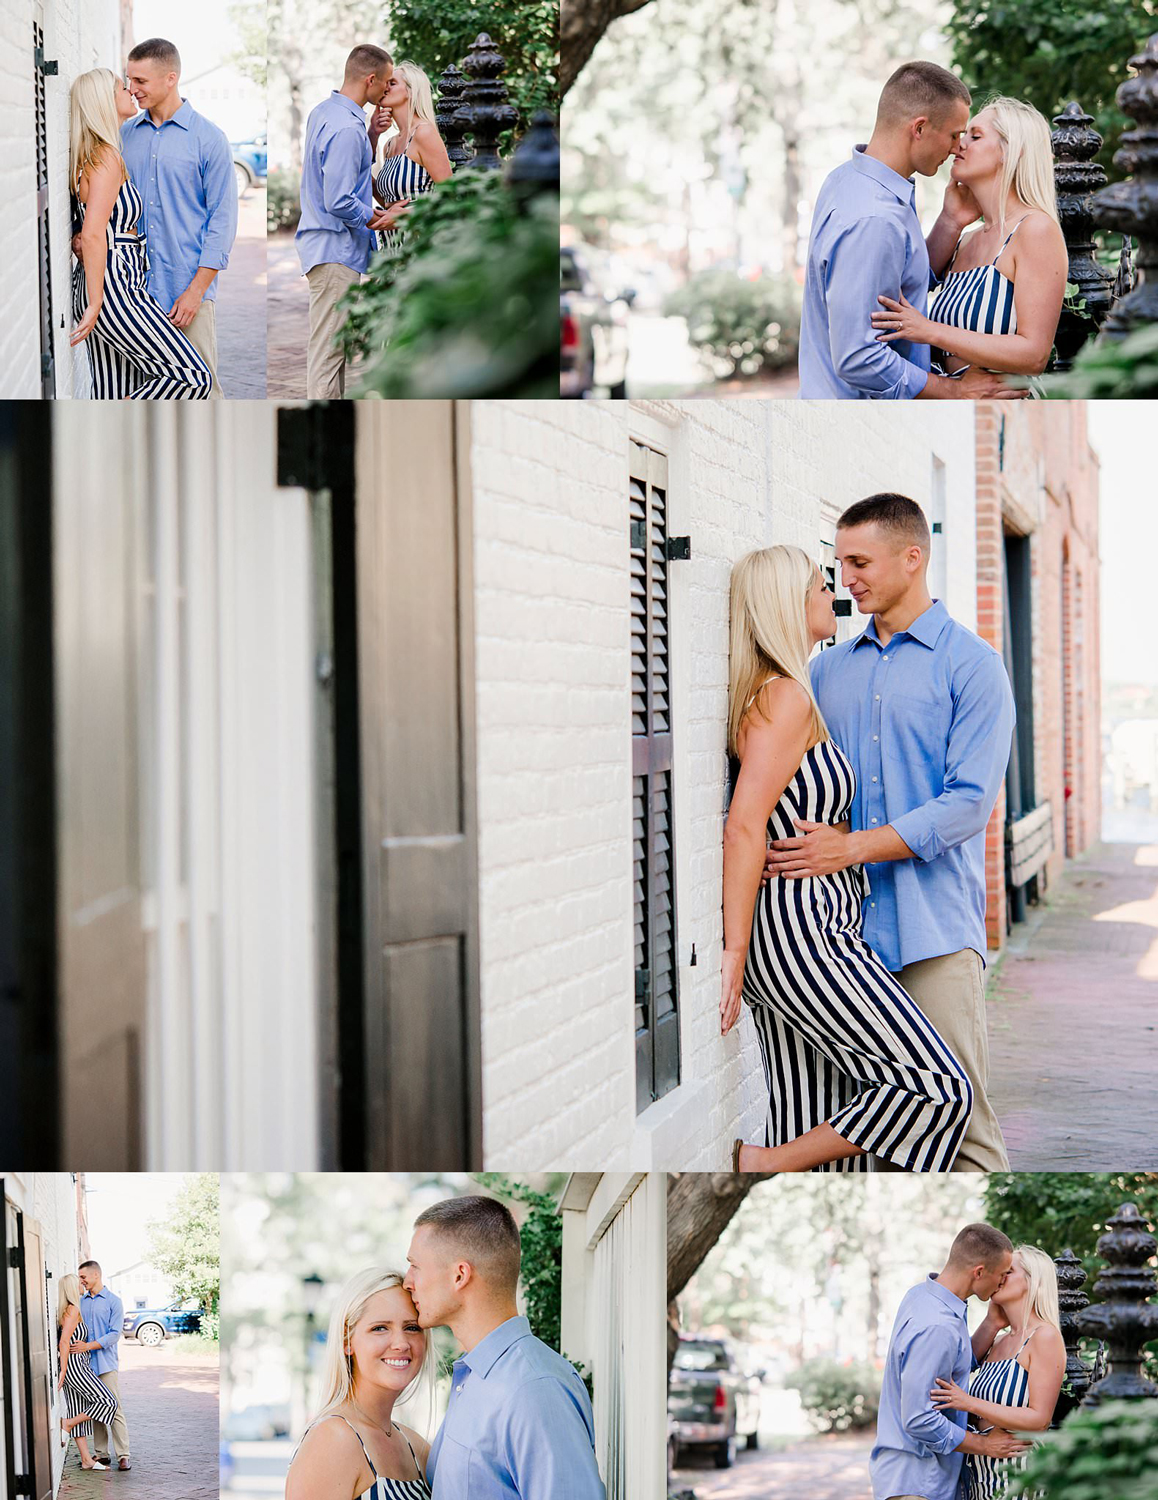 creative-lifestyle-engagement-pictures-norfolk-photographer-melissa-bliss-photography.jpg